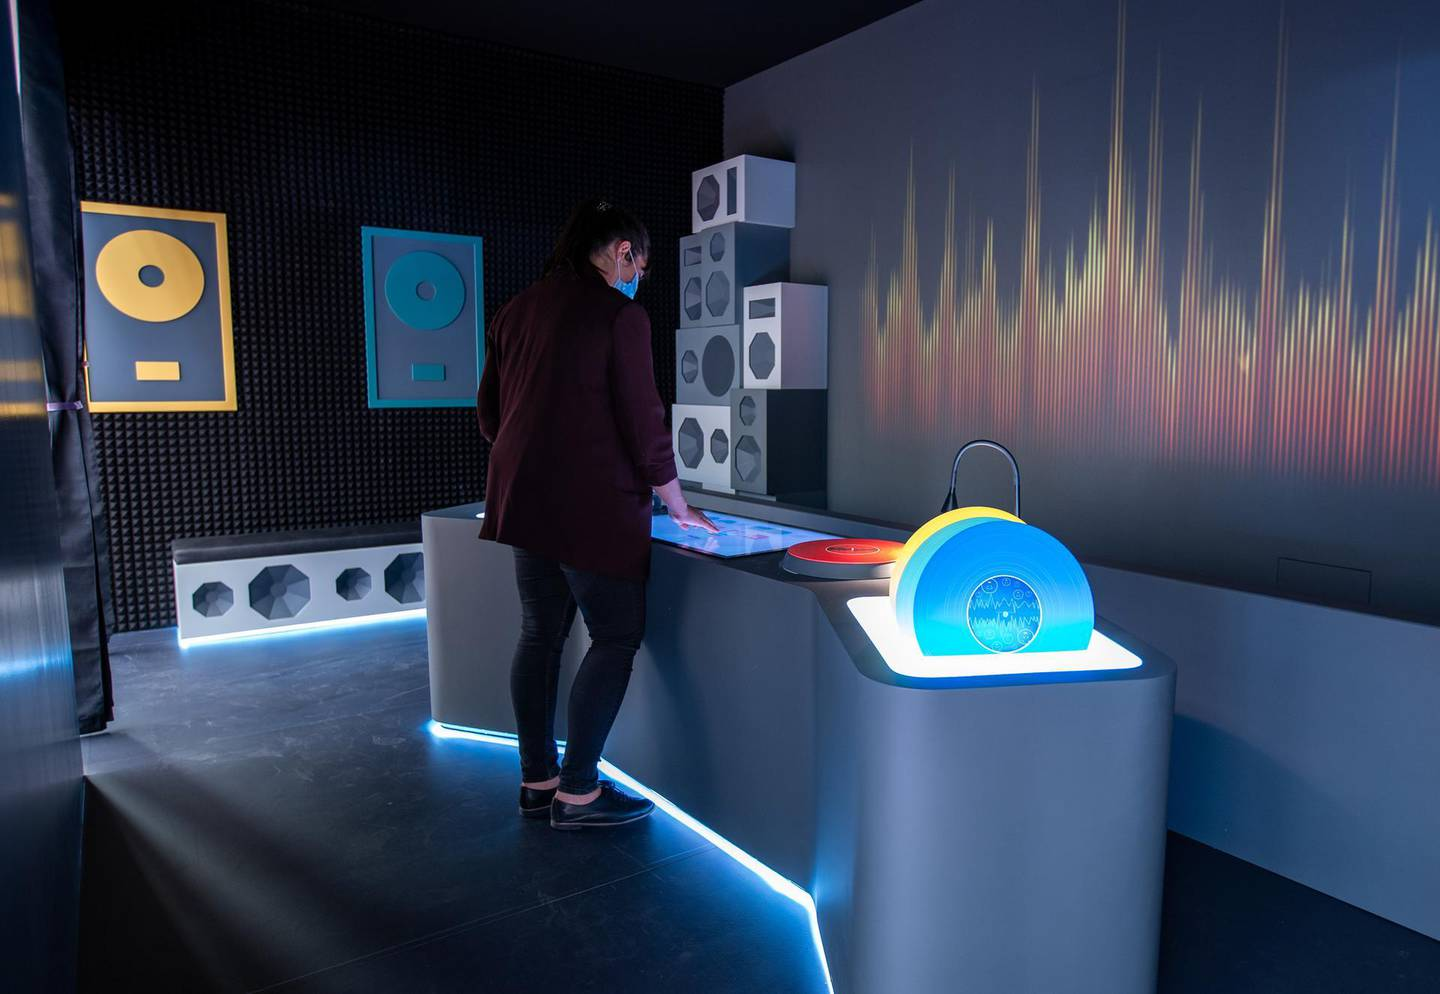 Louvre Abu Dhabi Children's Museum reopens this week. Preview/tour of the revamped space June, 15, 2021. Digital DJ area at the museum. Victor Besa / The National. Reporter: Alexandra Chaves for Arts & Culture